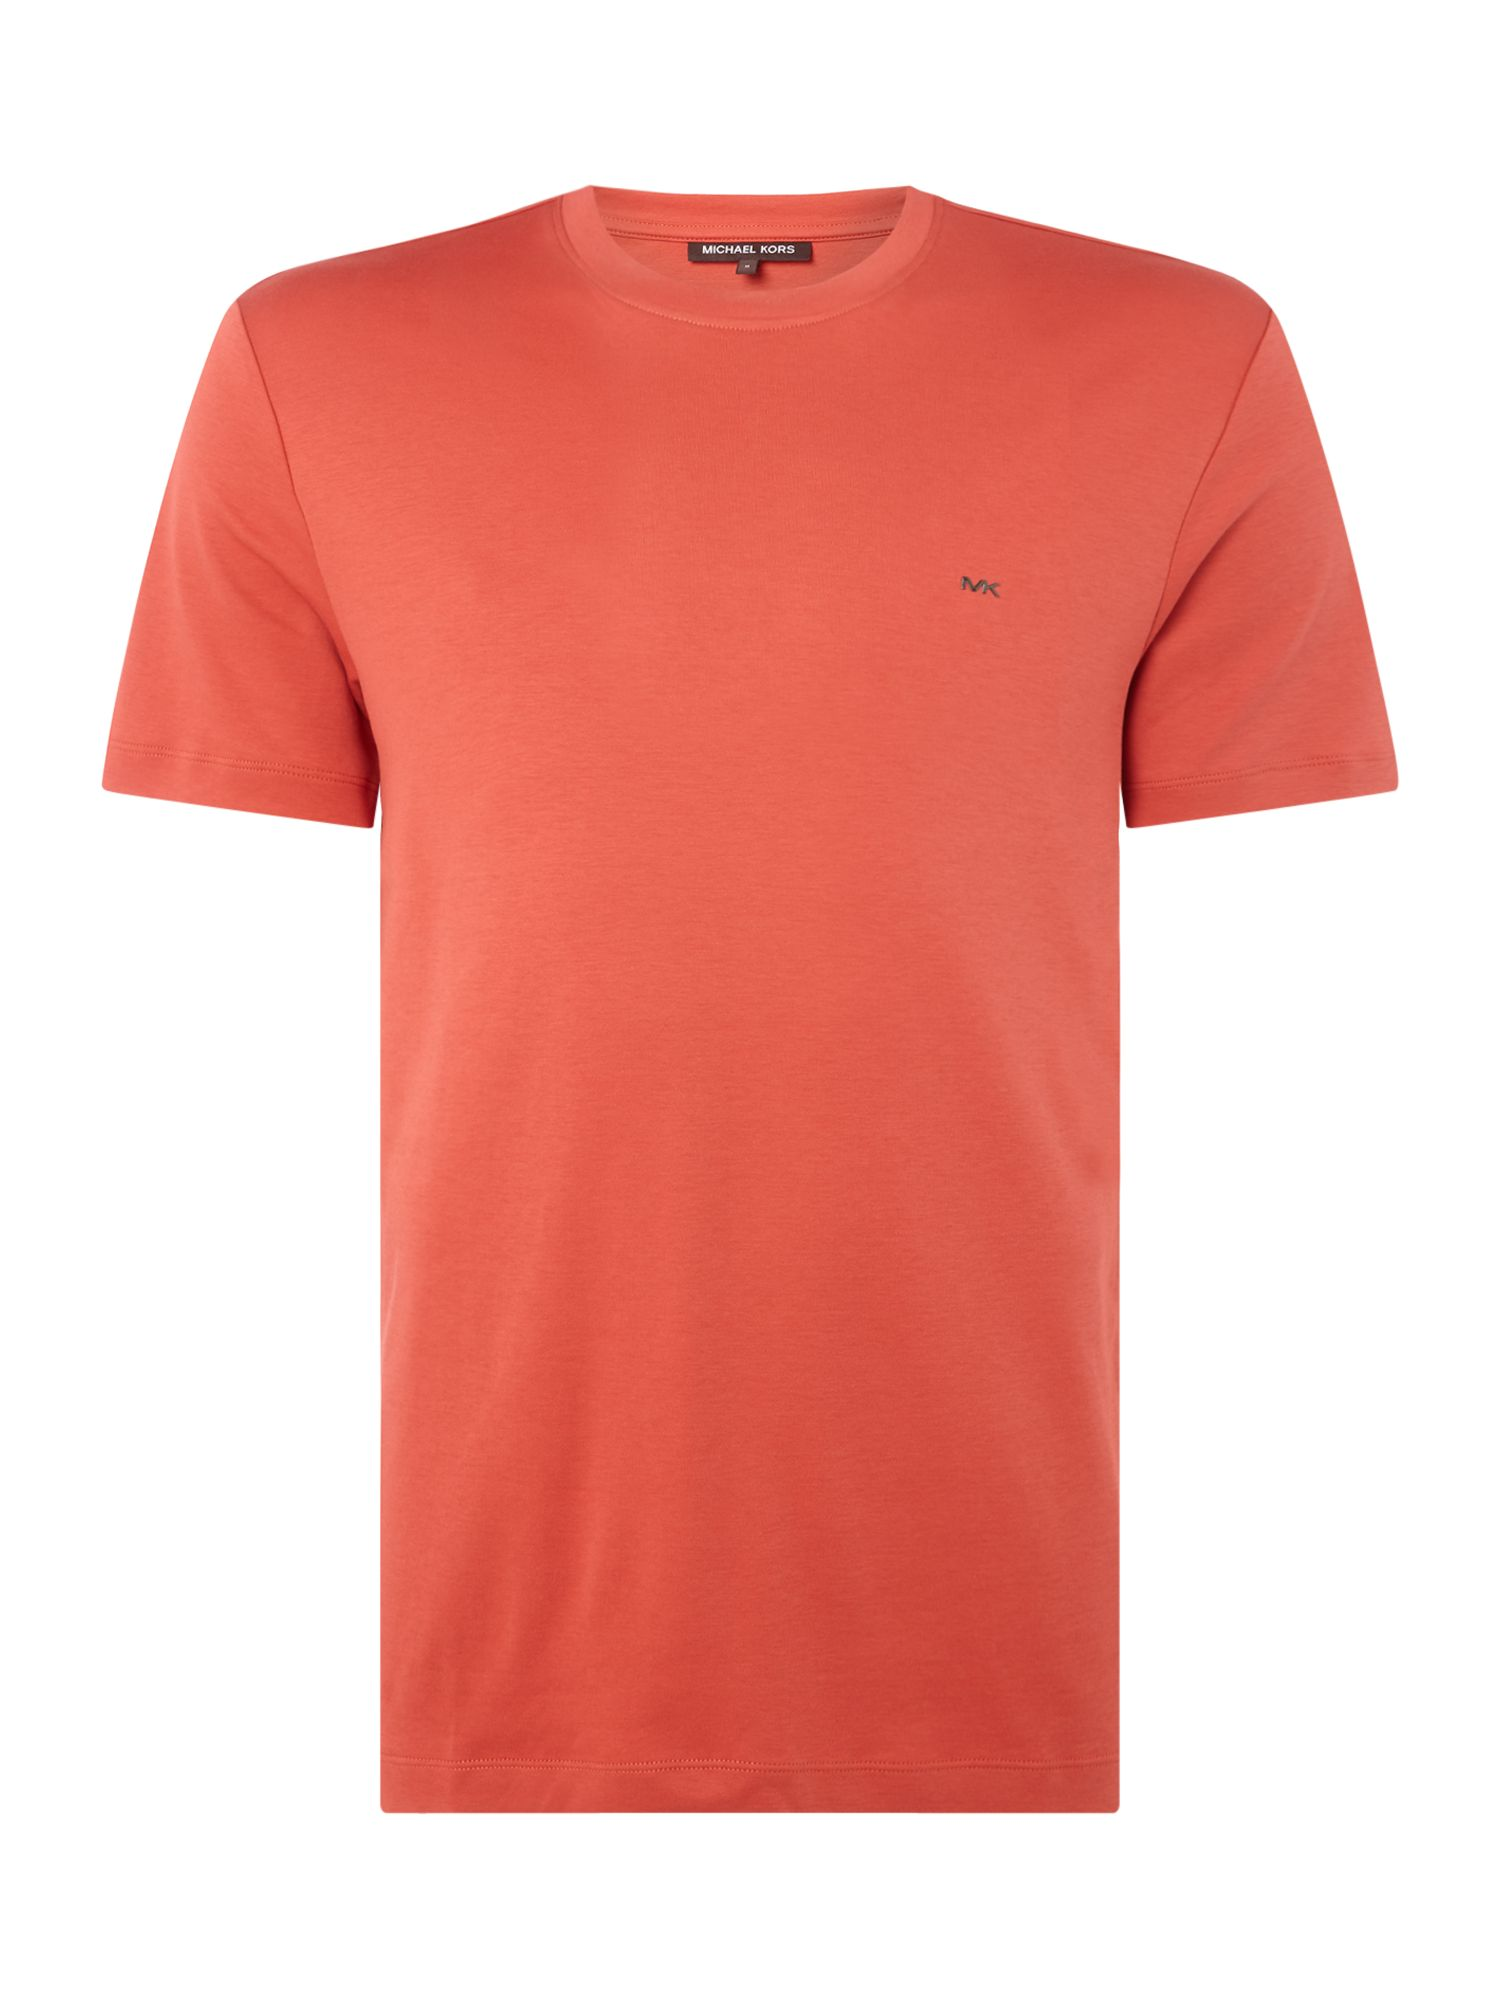 Men's Michael Kors Sleek Crew Neck T-Shirt, Baked Red